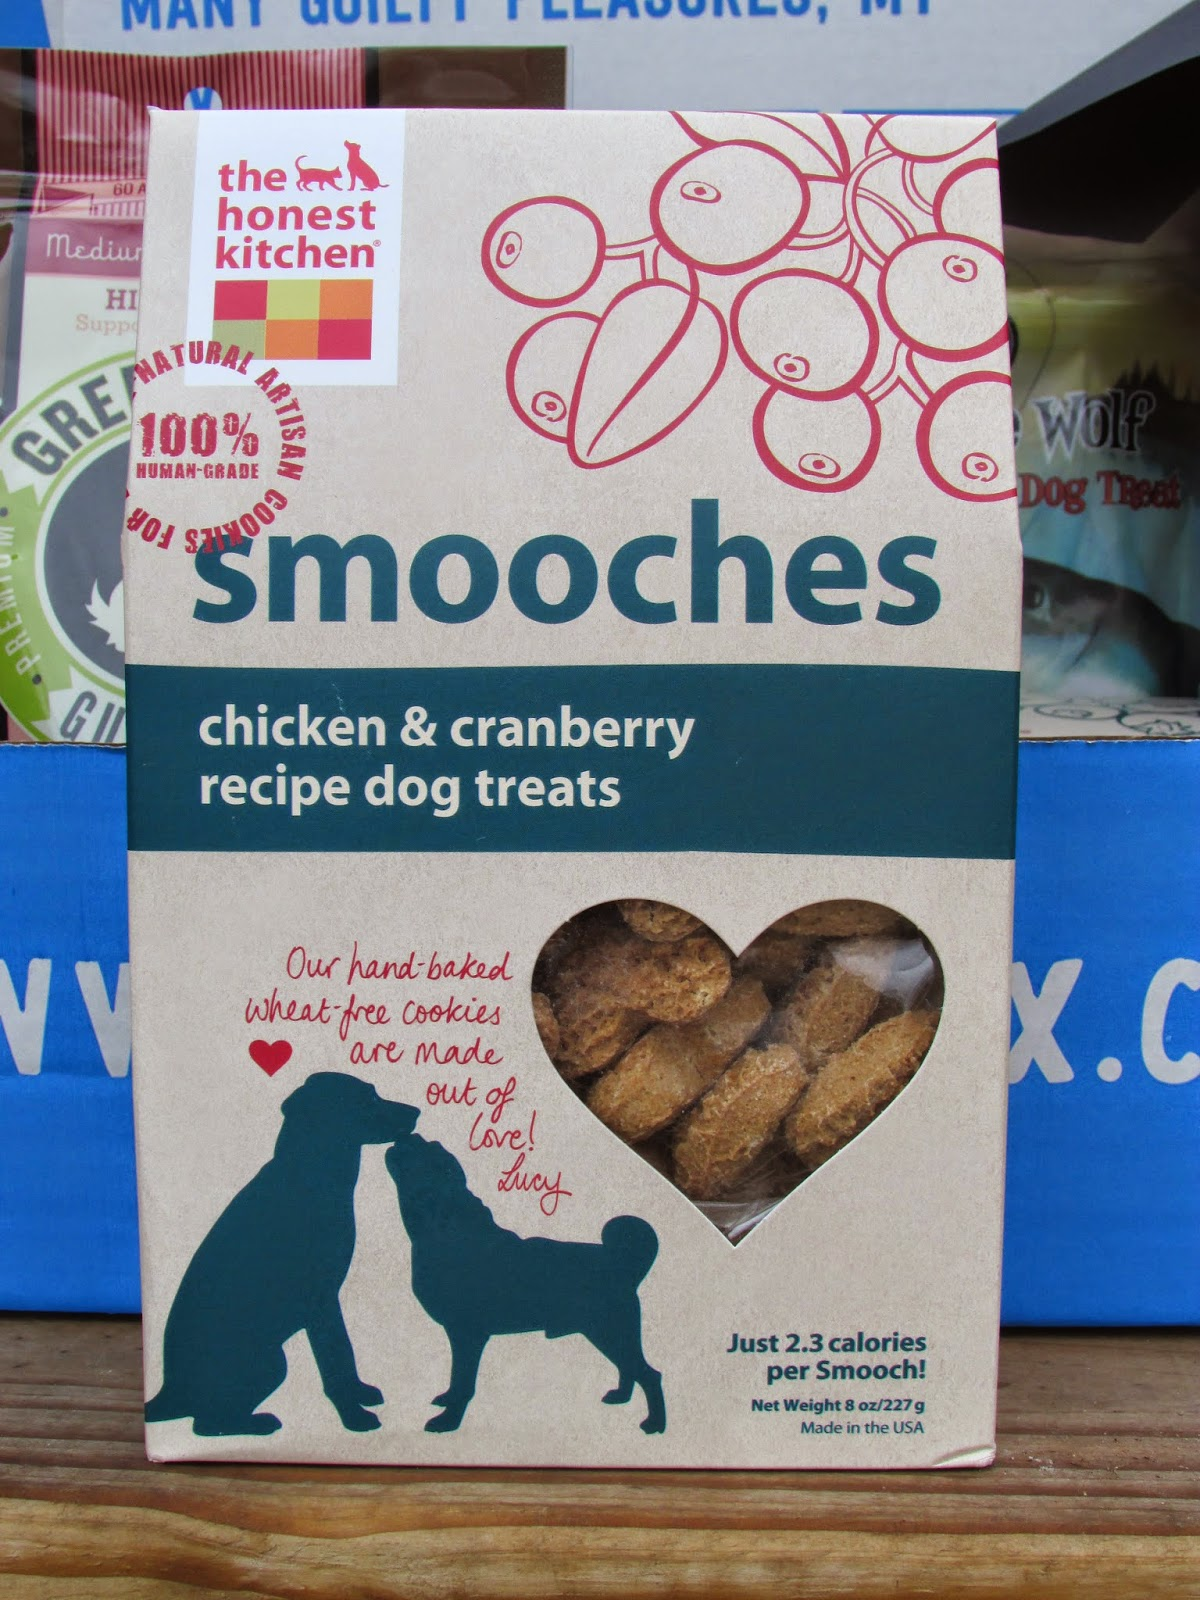 The Honest Kitchen Smooches review